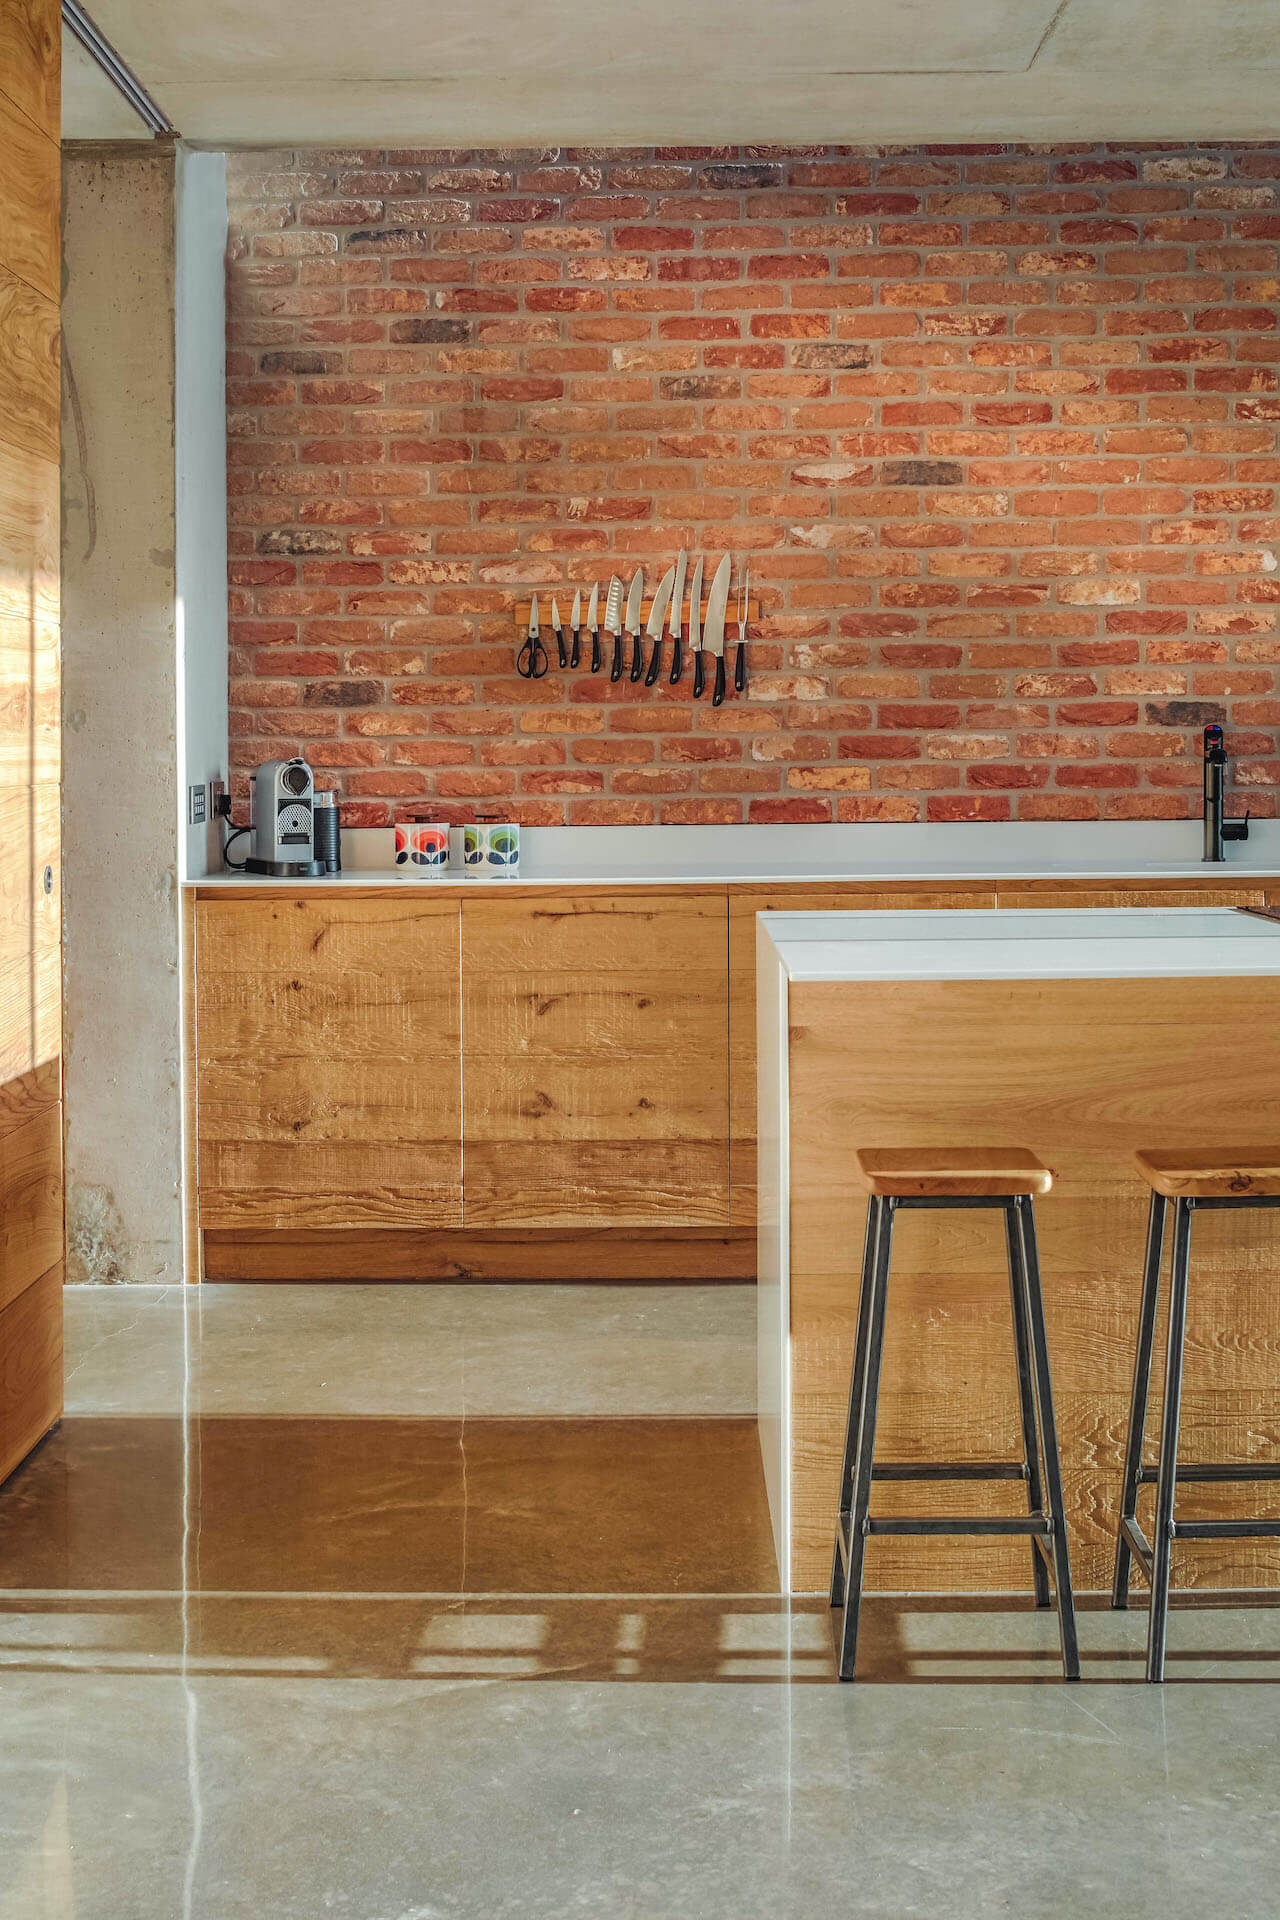 Industrial, reclaimed wood kitchen with concrete and brick